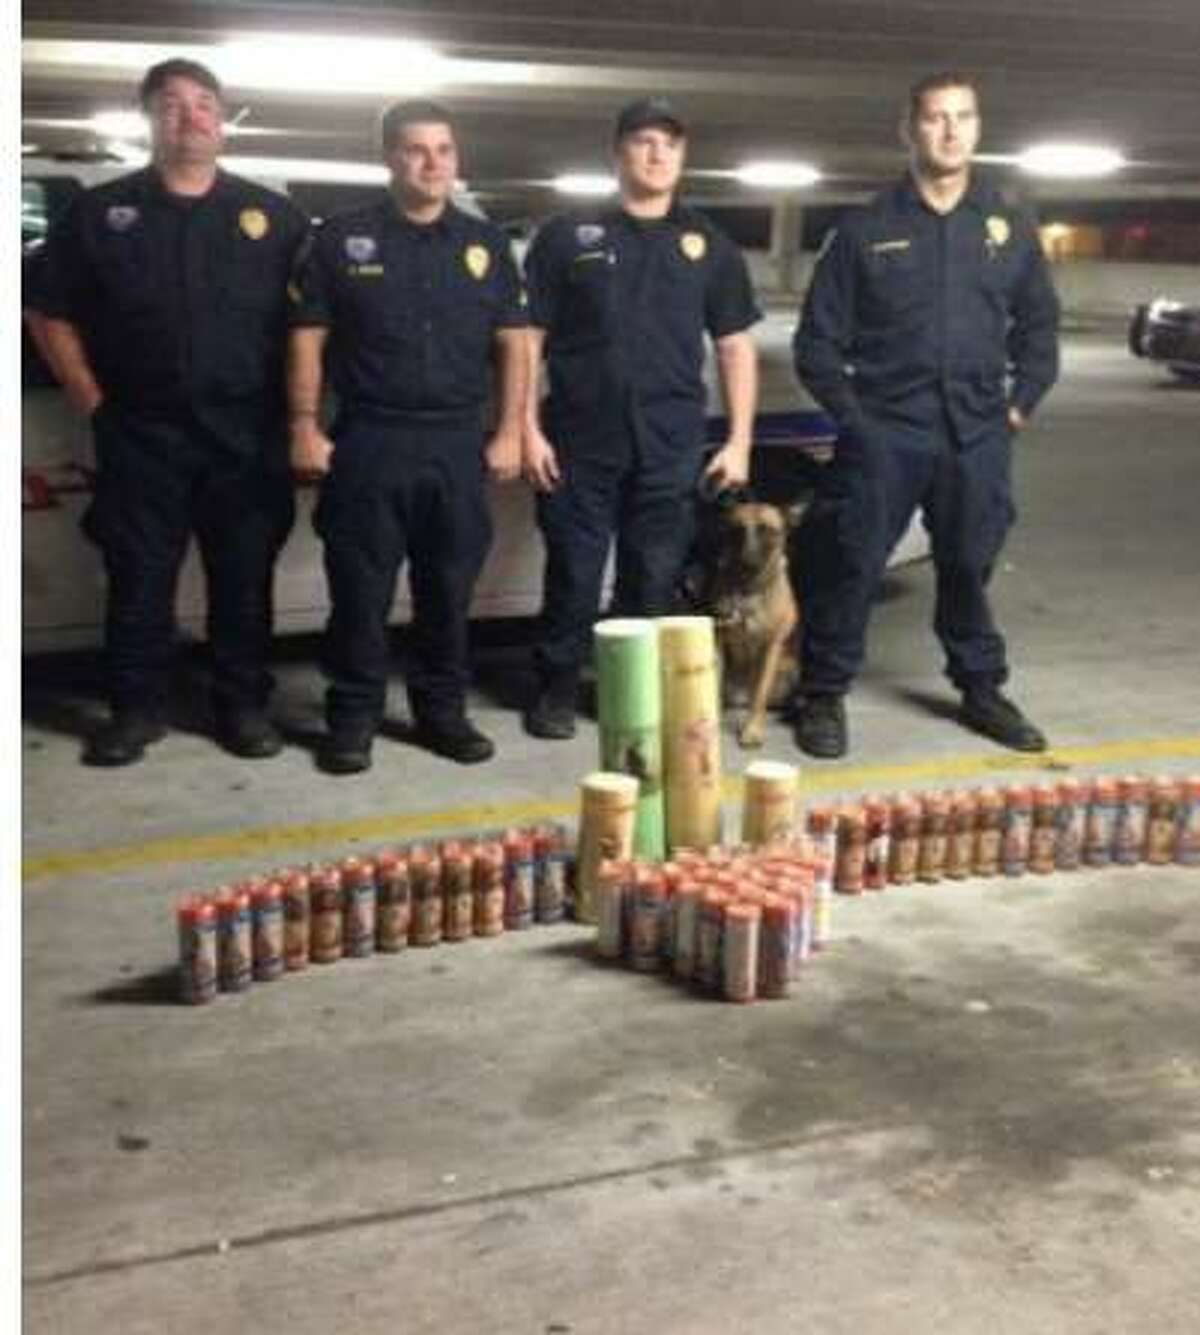 Baton Rouge police arrested a 19-year-old Texas man for smuggling methamphetamine mixed in with wax inside 48 candles depicting the Sacred Heart of Jesus Christ. Police arrested Jose Antonio Rodriguez-Lara of Houston while conducting a traffic stop of an El Expresso commercial passenger bus on Interstate 12 in Baton Rouge on Oct. 16, 2014, according to a news release.